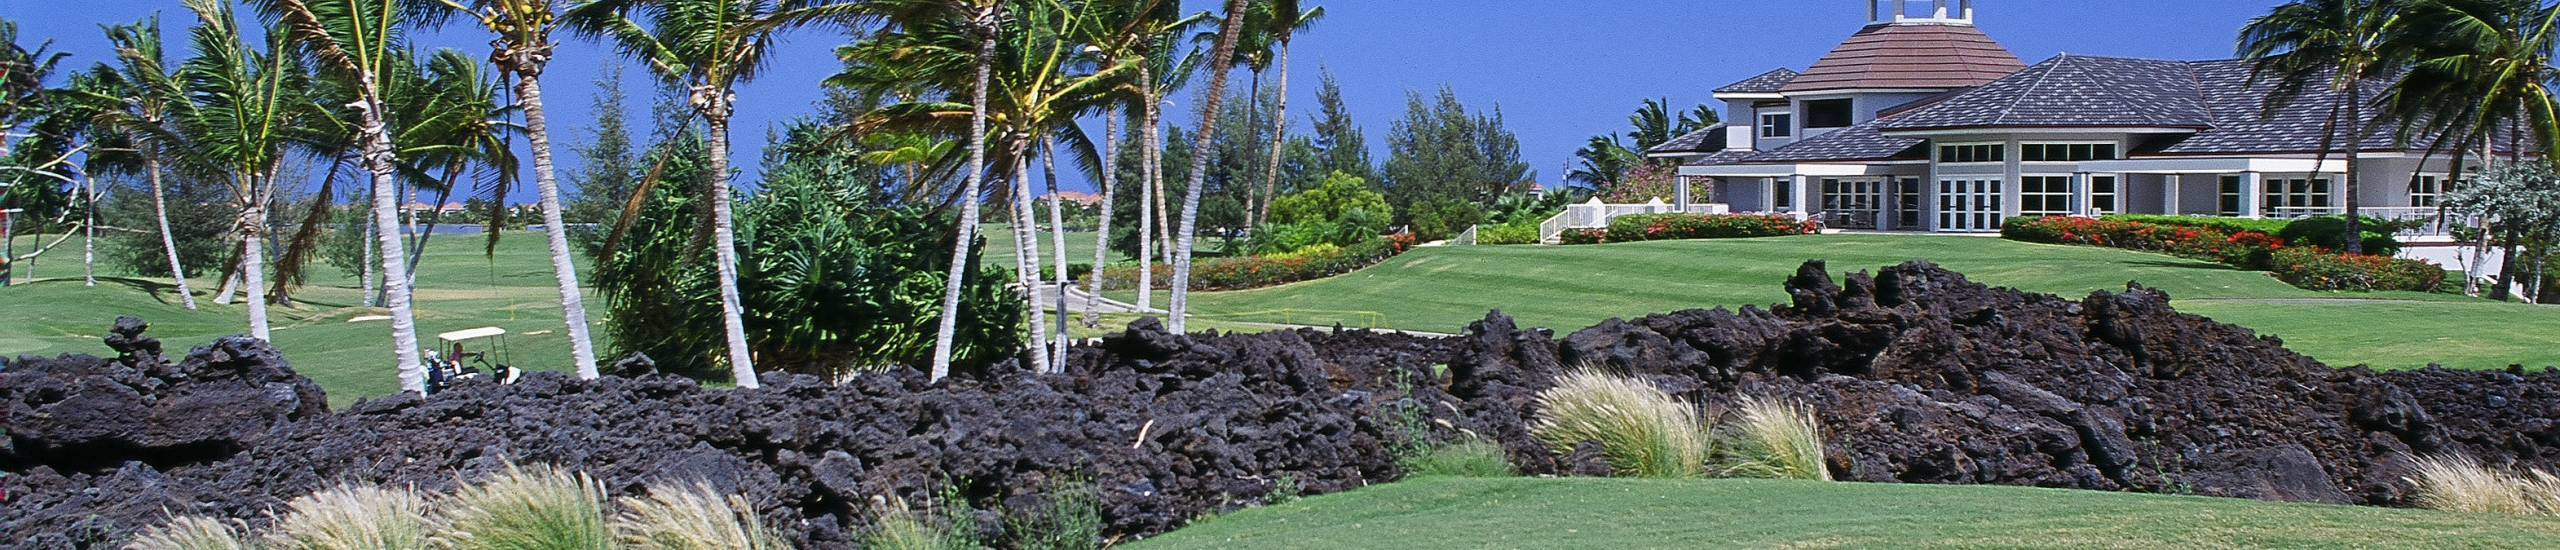 Waikoloa Resort Golf Course